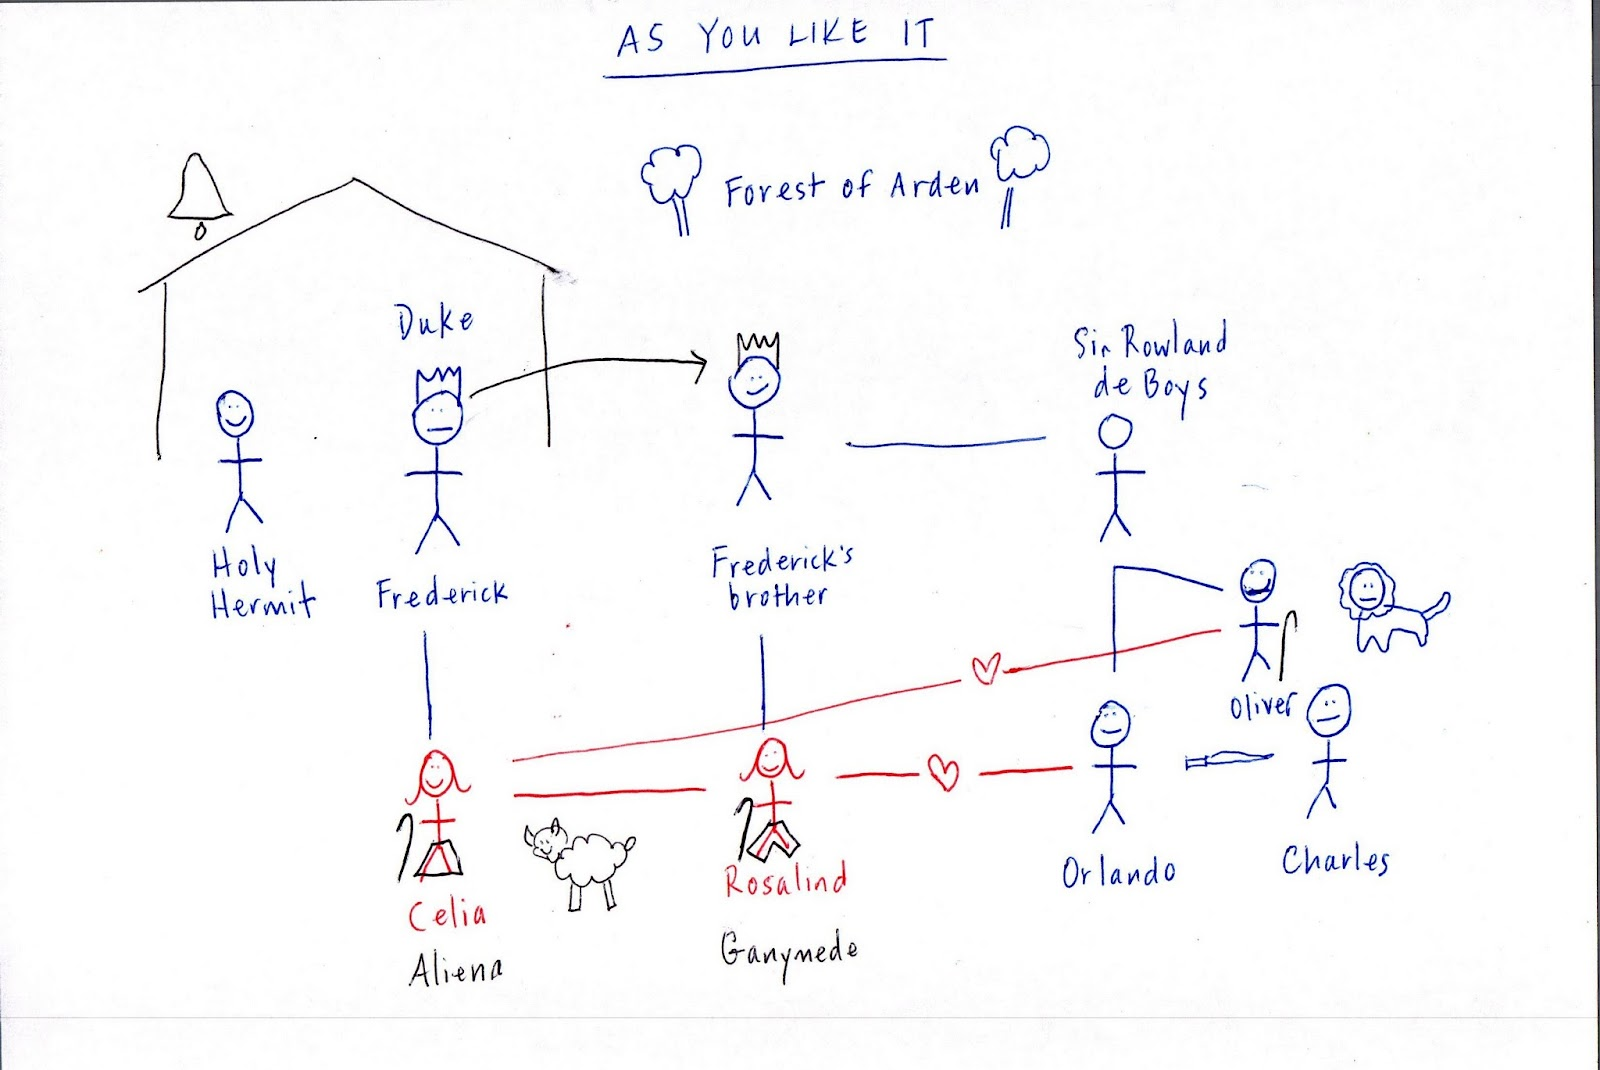 Here's one of the embarrassingly-simple family trees I have drawn ...